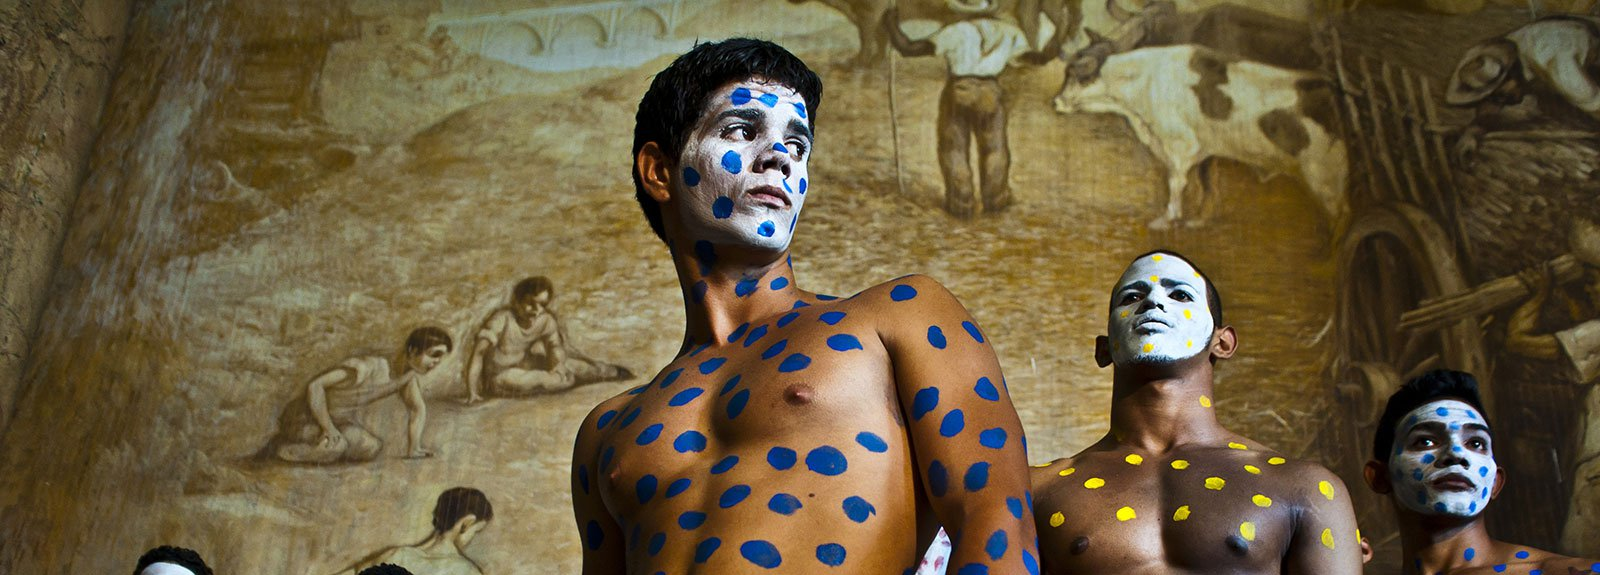 Models painted with blue and yellow spots and the face white